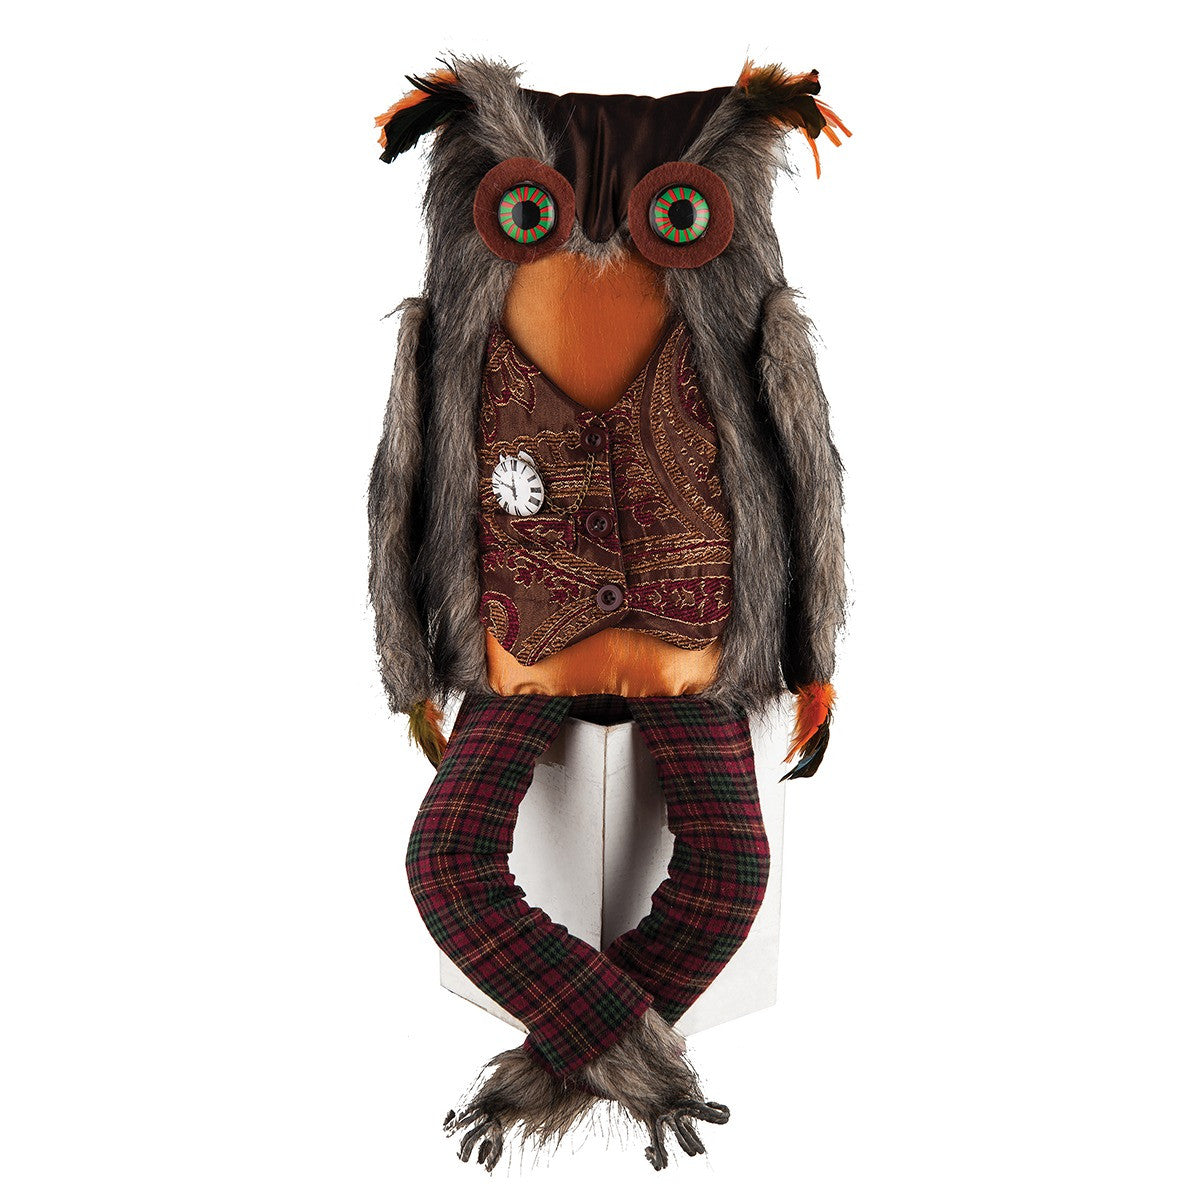 Einstein Owl Figure by Gallerie II Einstien Owl